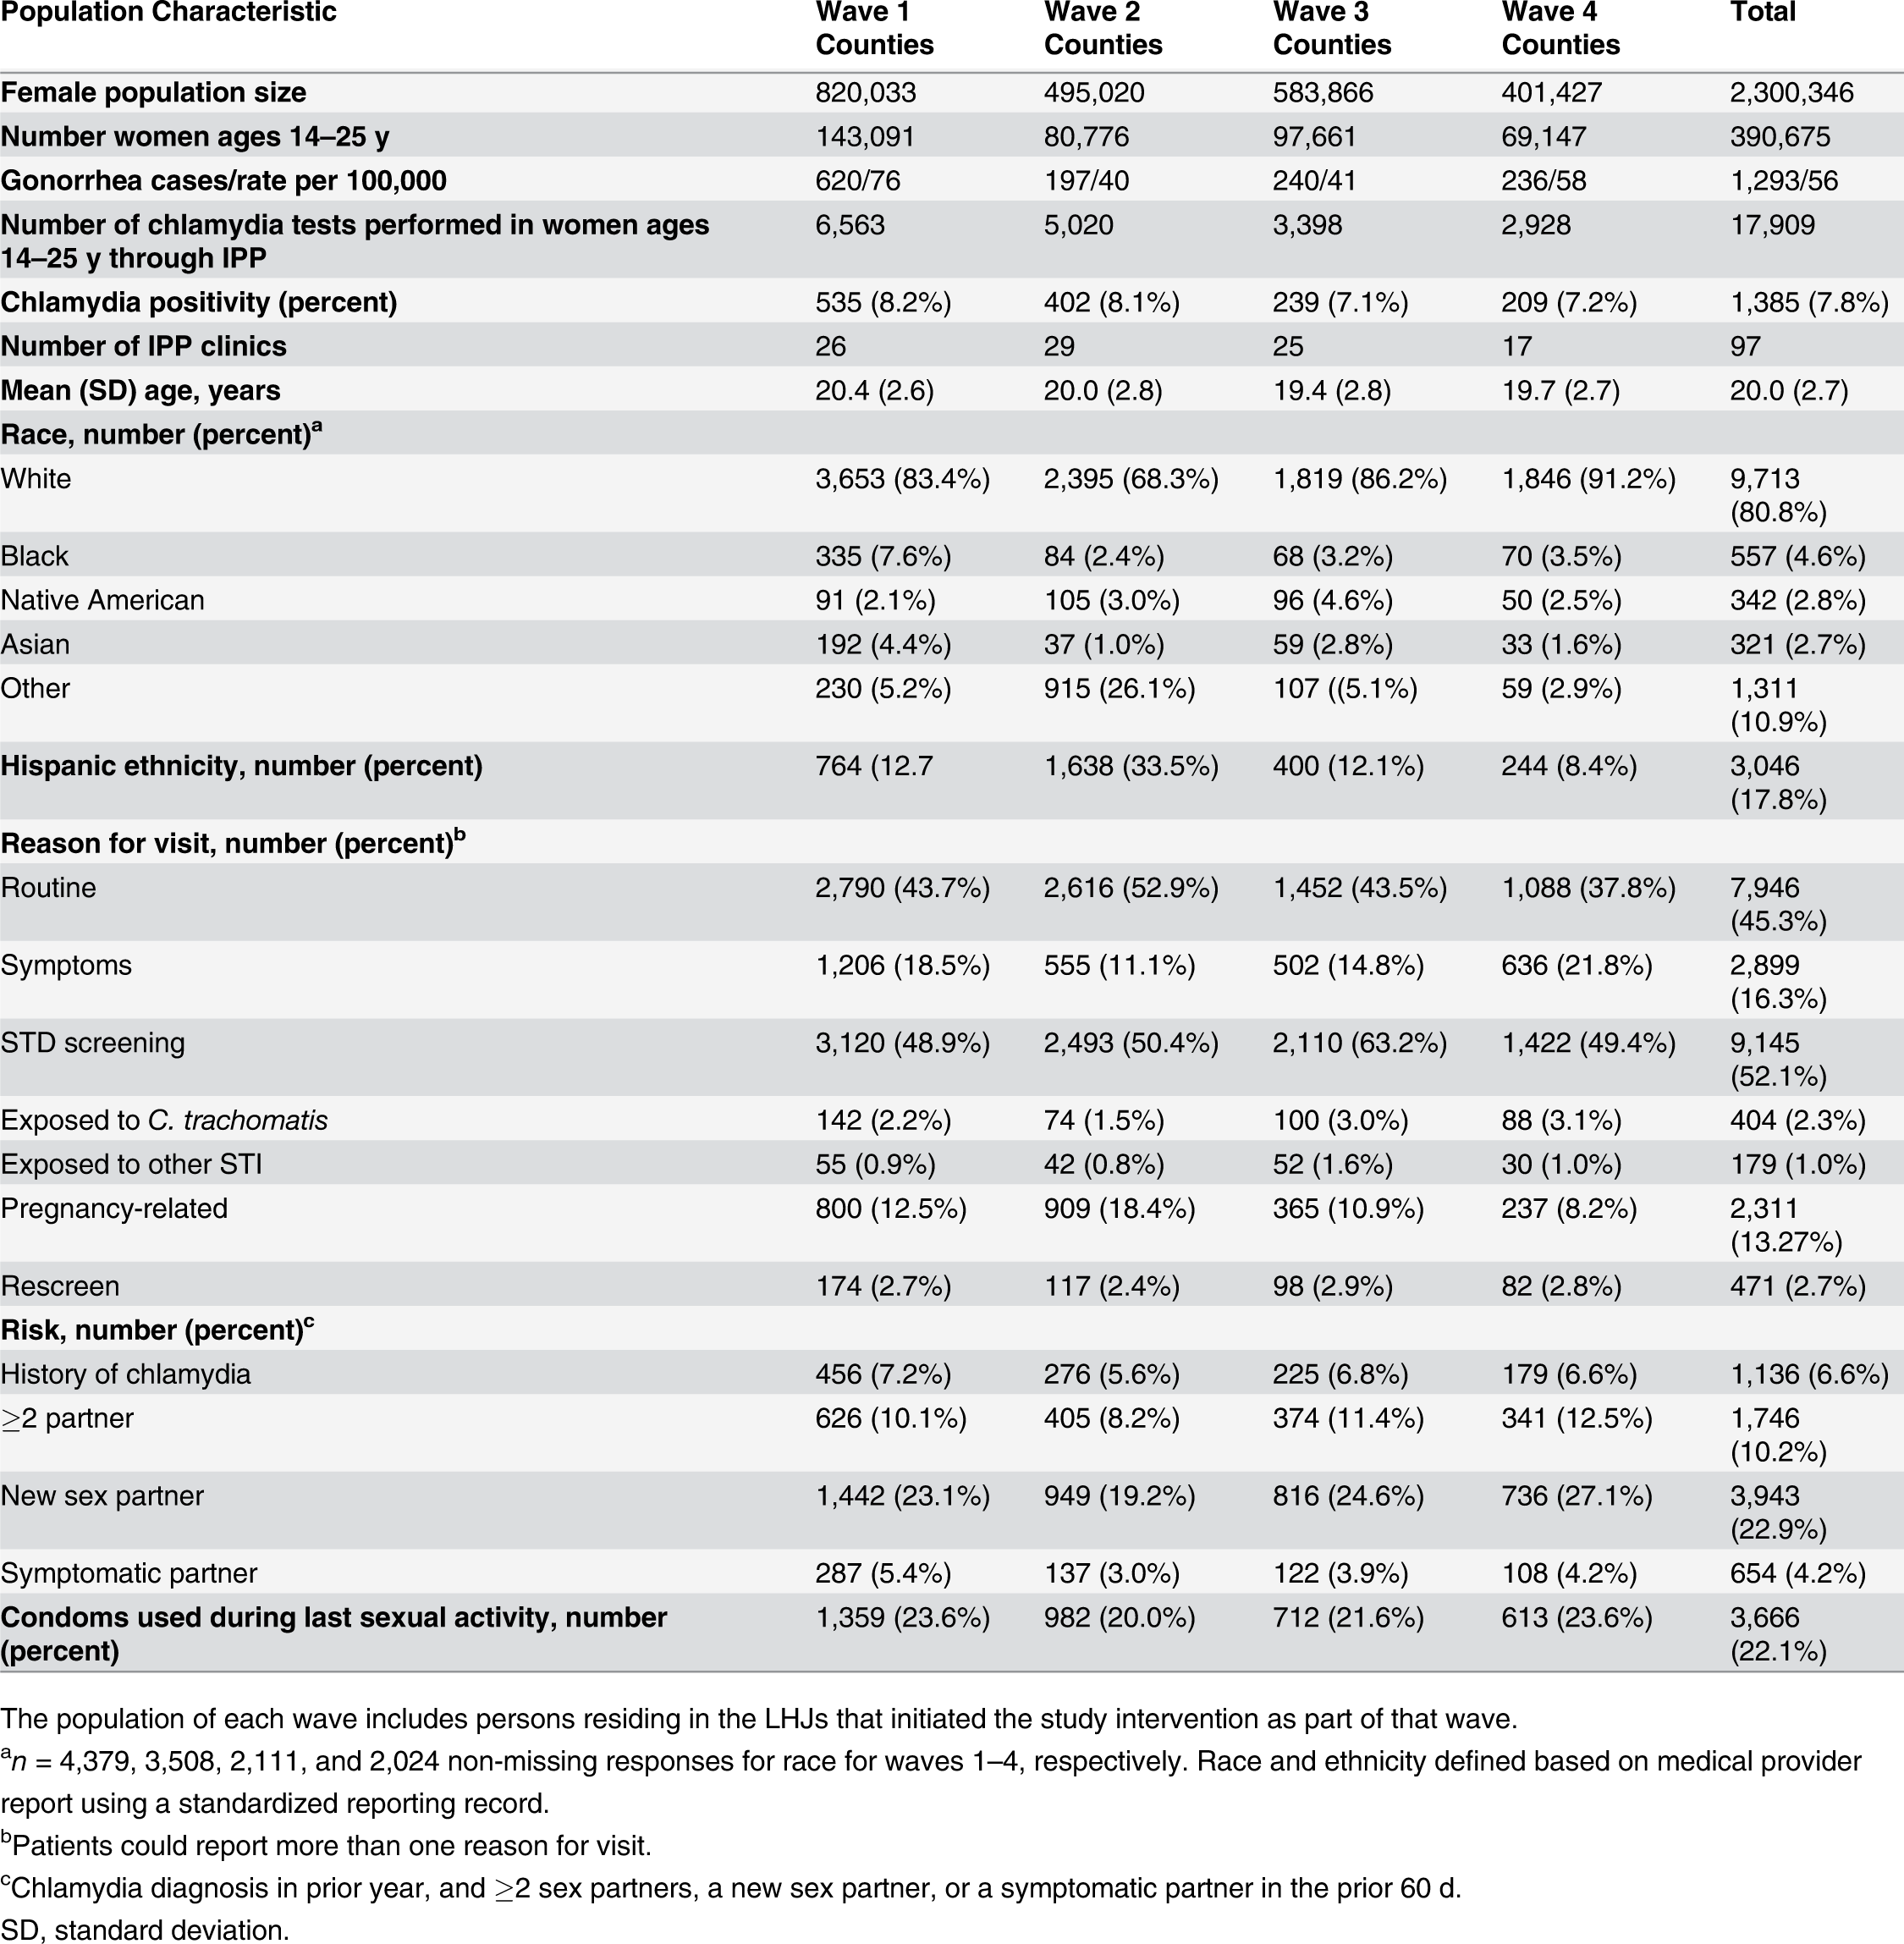 Study population size and characteristics in local health jurisdictions in each study wave during the year prior to the intervention (October 2006–September 2007).